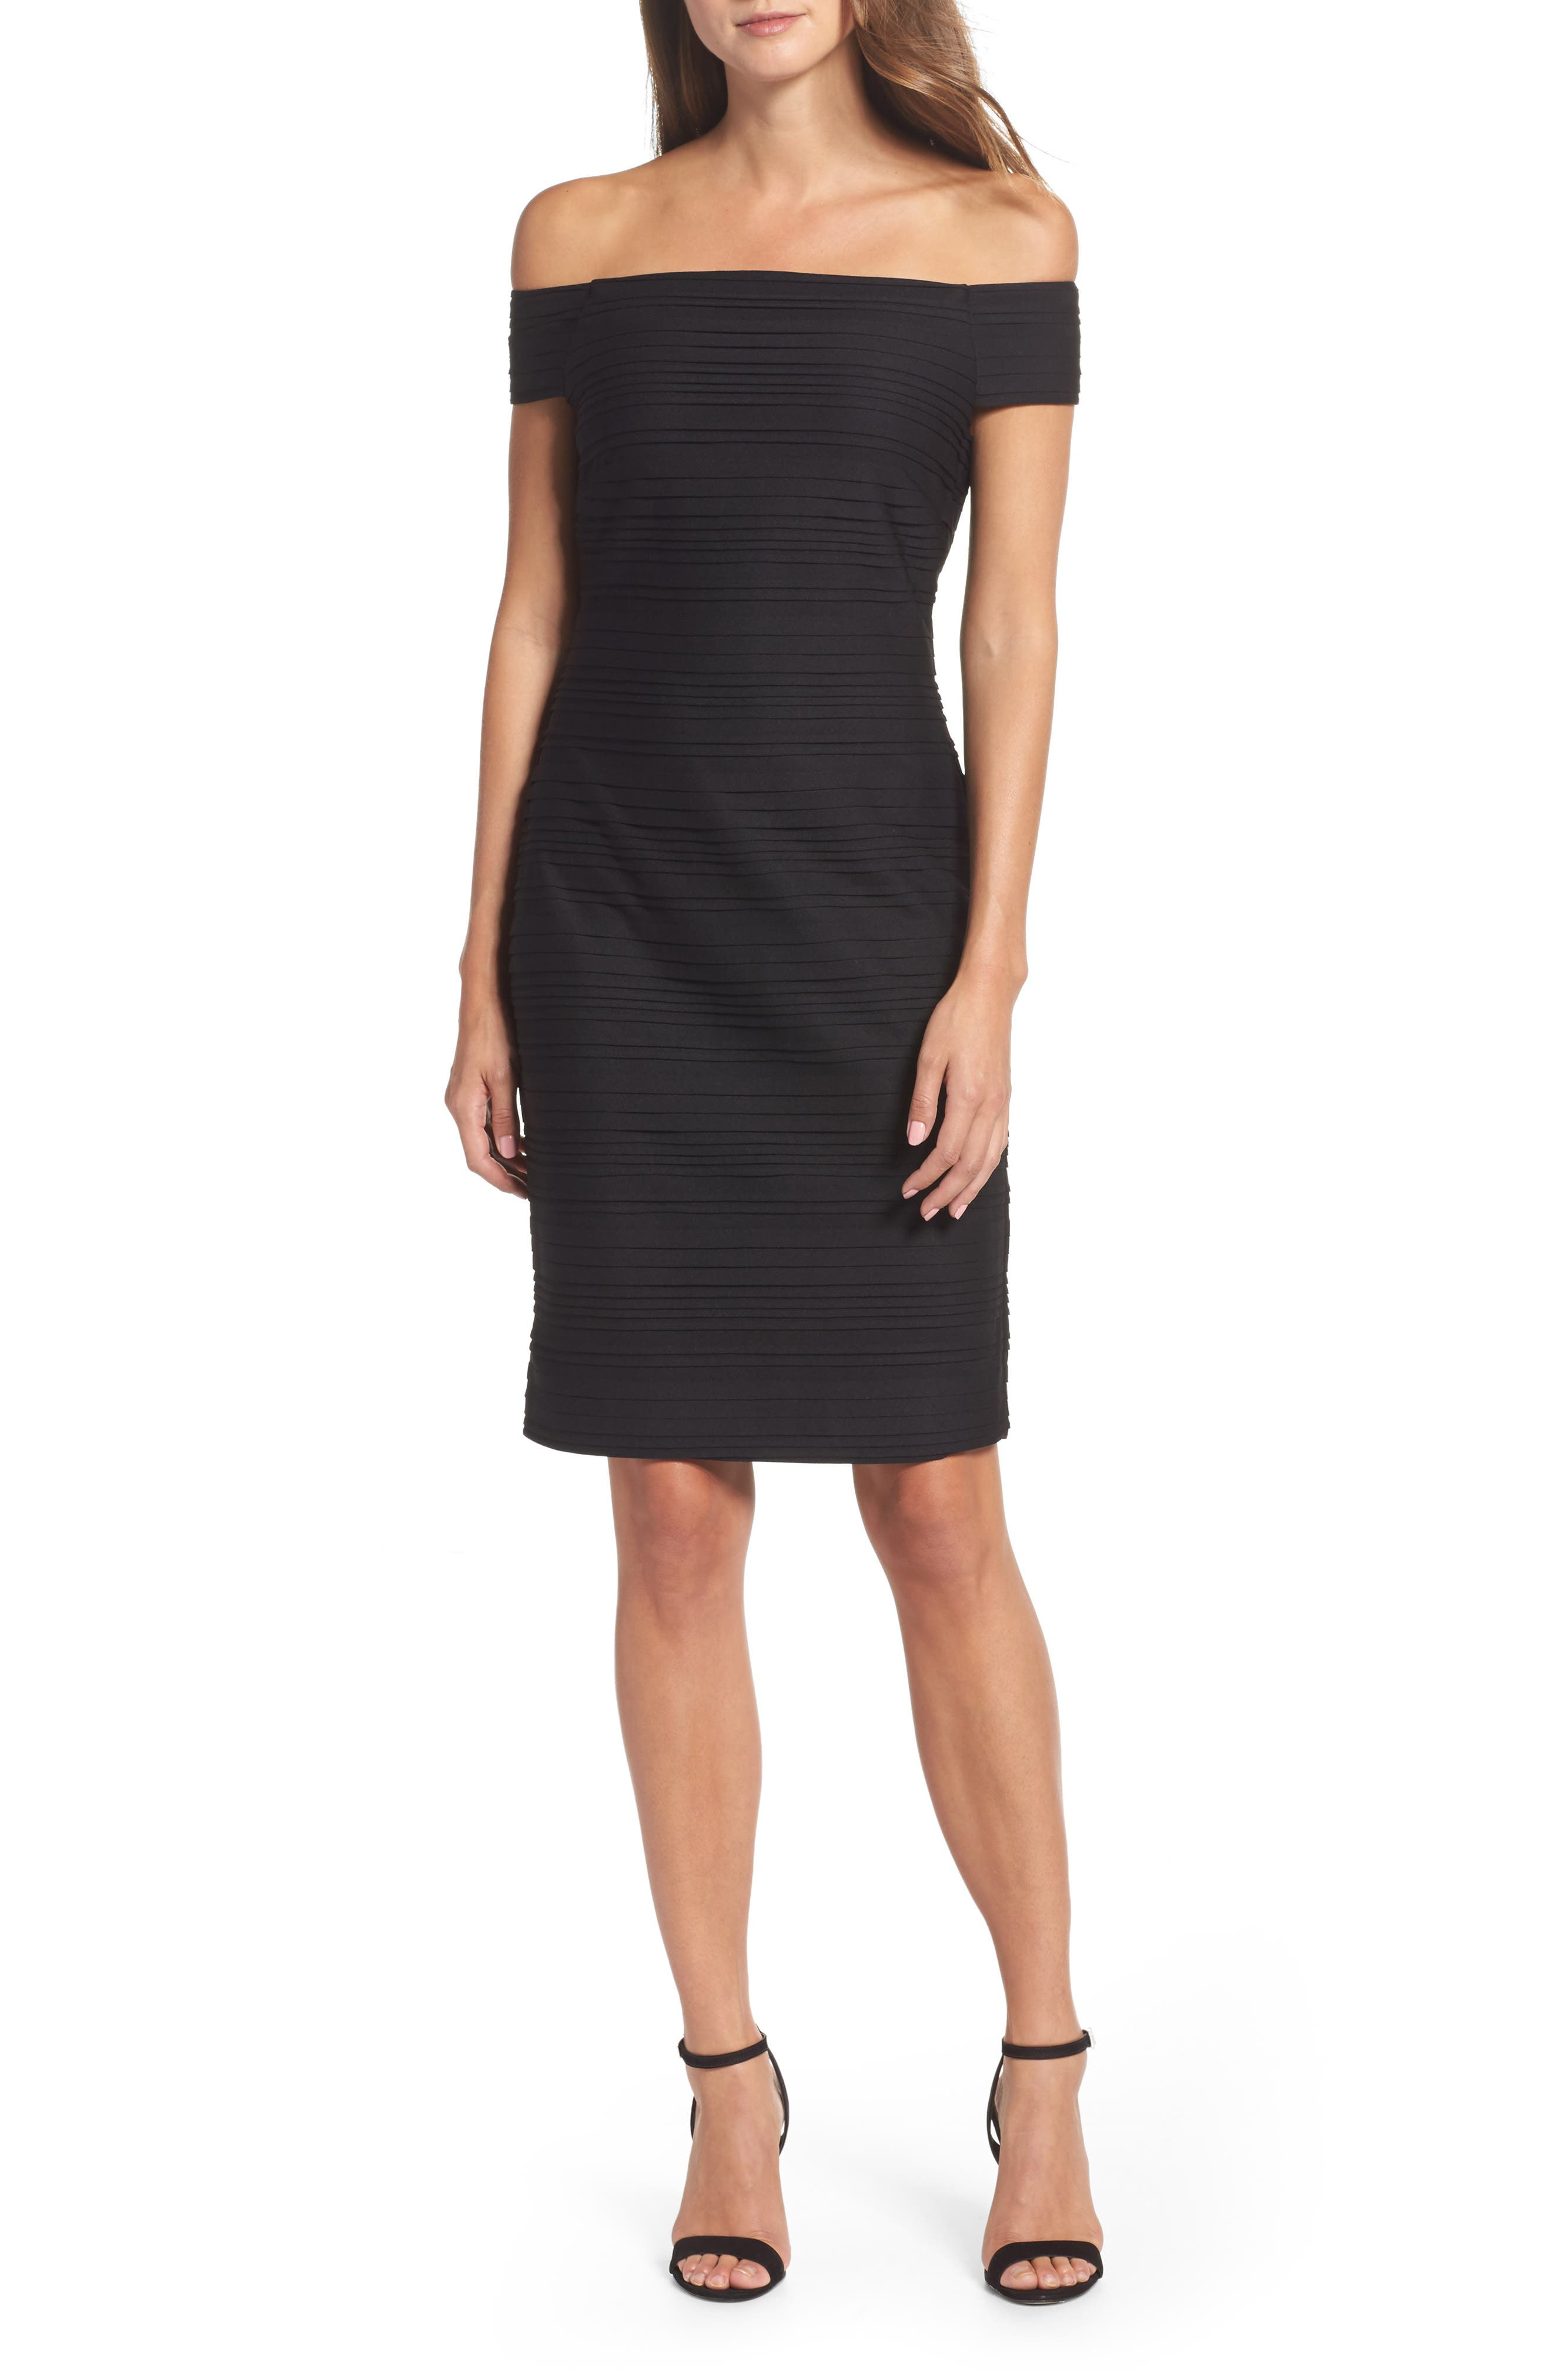 Alternate Image 1 Selected - Vince Camuto Off the Shoulder Sheath Dress